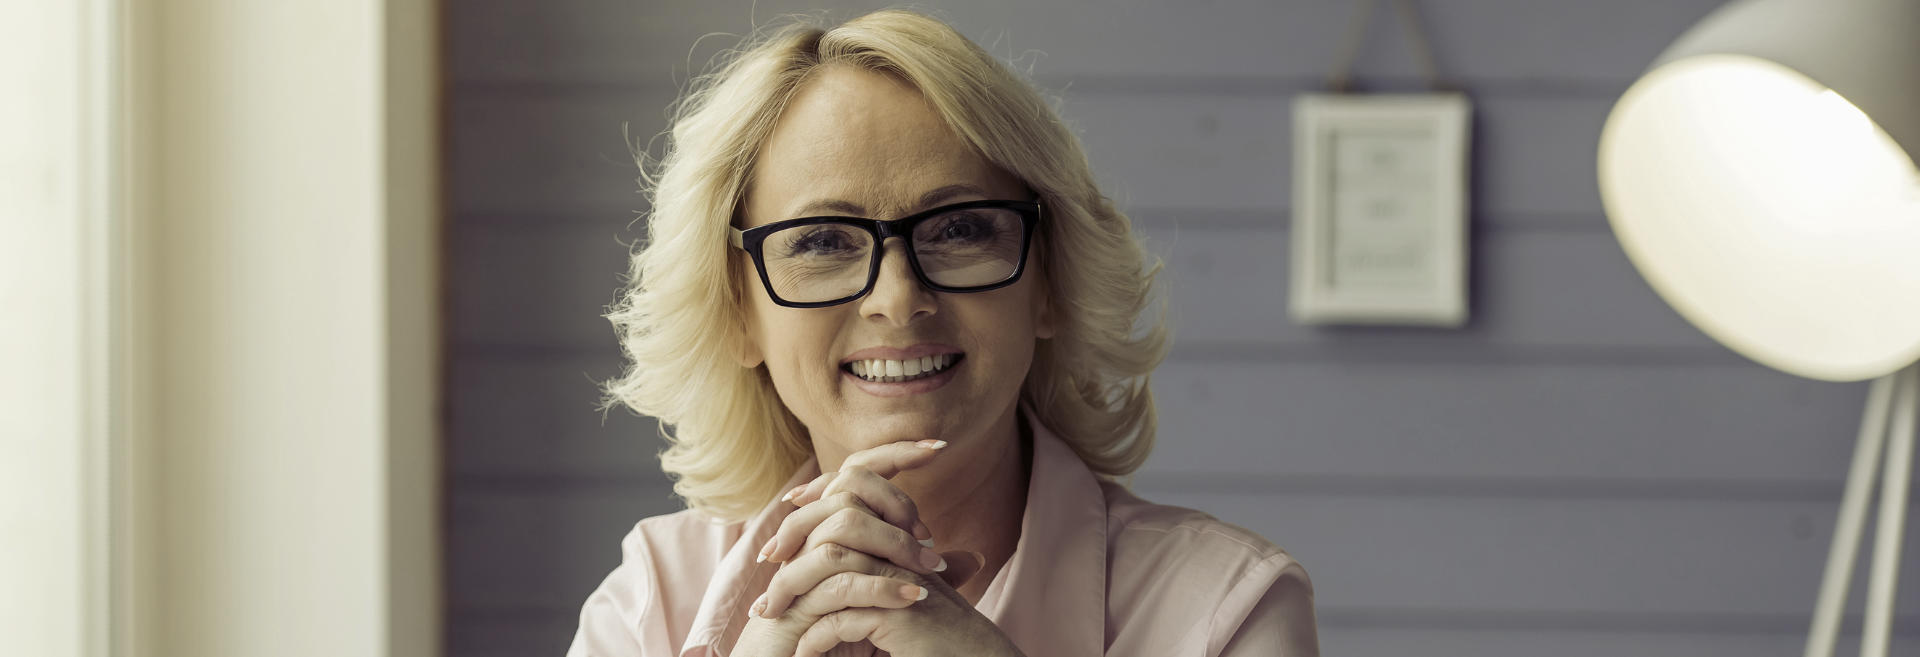 mature woman with glasses showing her beautiful teeth in a smile